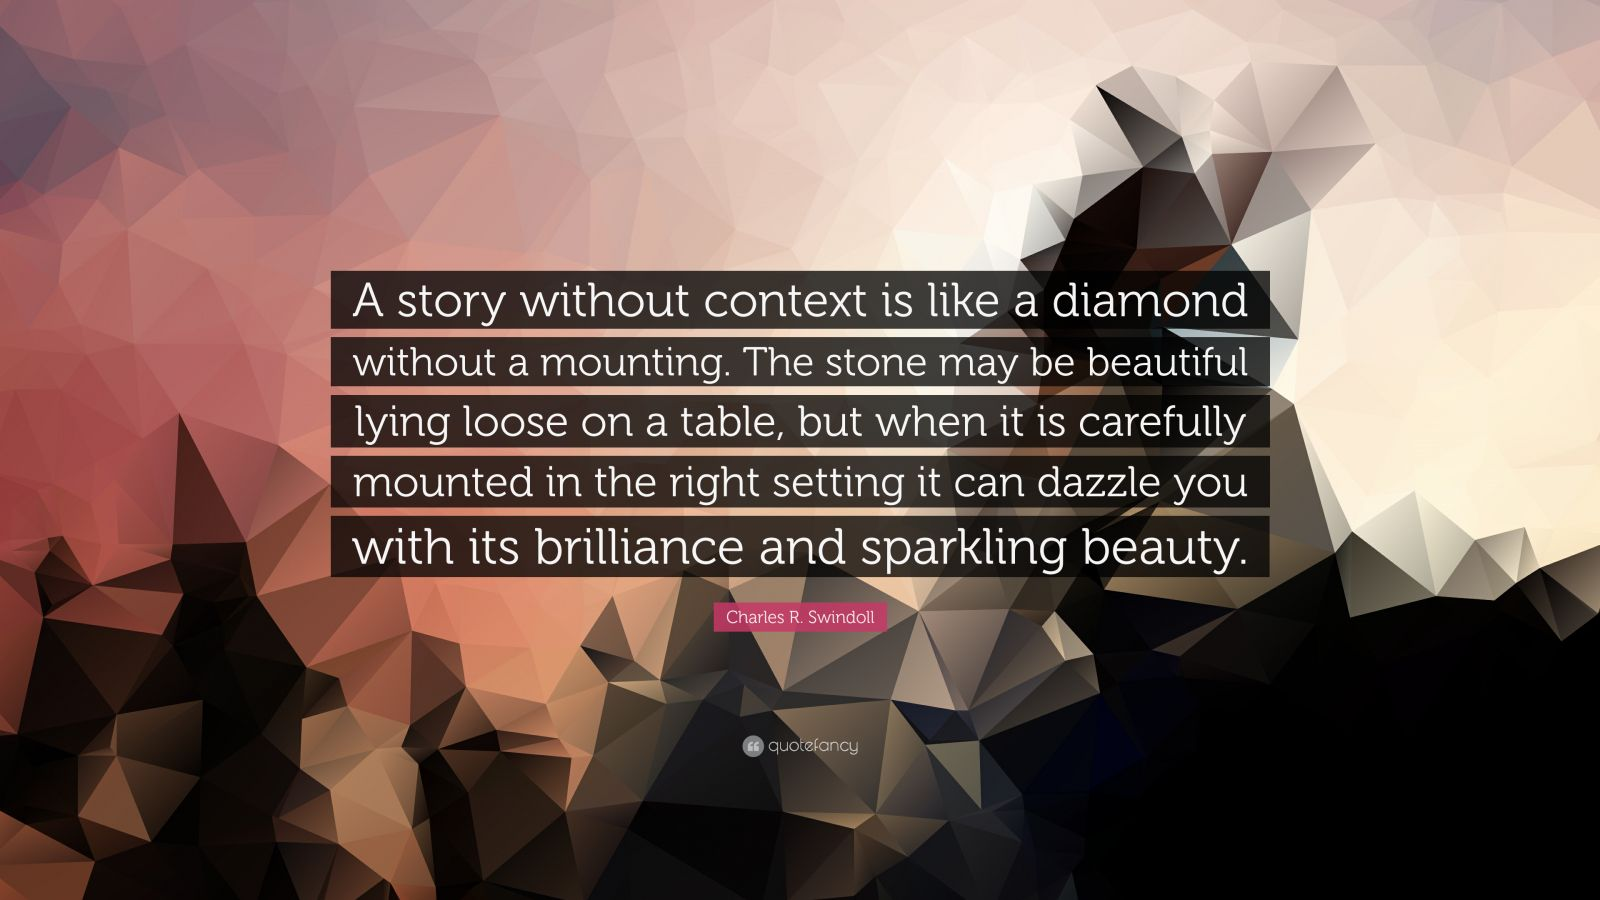 """Charles R. Swindoll Quote: """"A story without context is like a diamond without a mounting. The stone may be beautiful lying loose on a table, but when it is carefully mounted in the right setting it can dazzle you with its brilliance and sparkling beauty."""""""